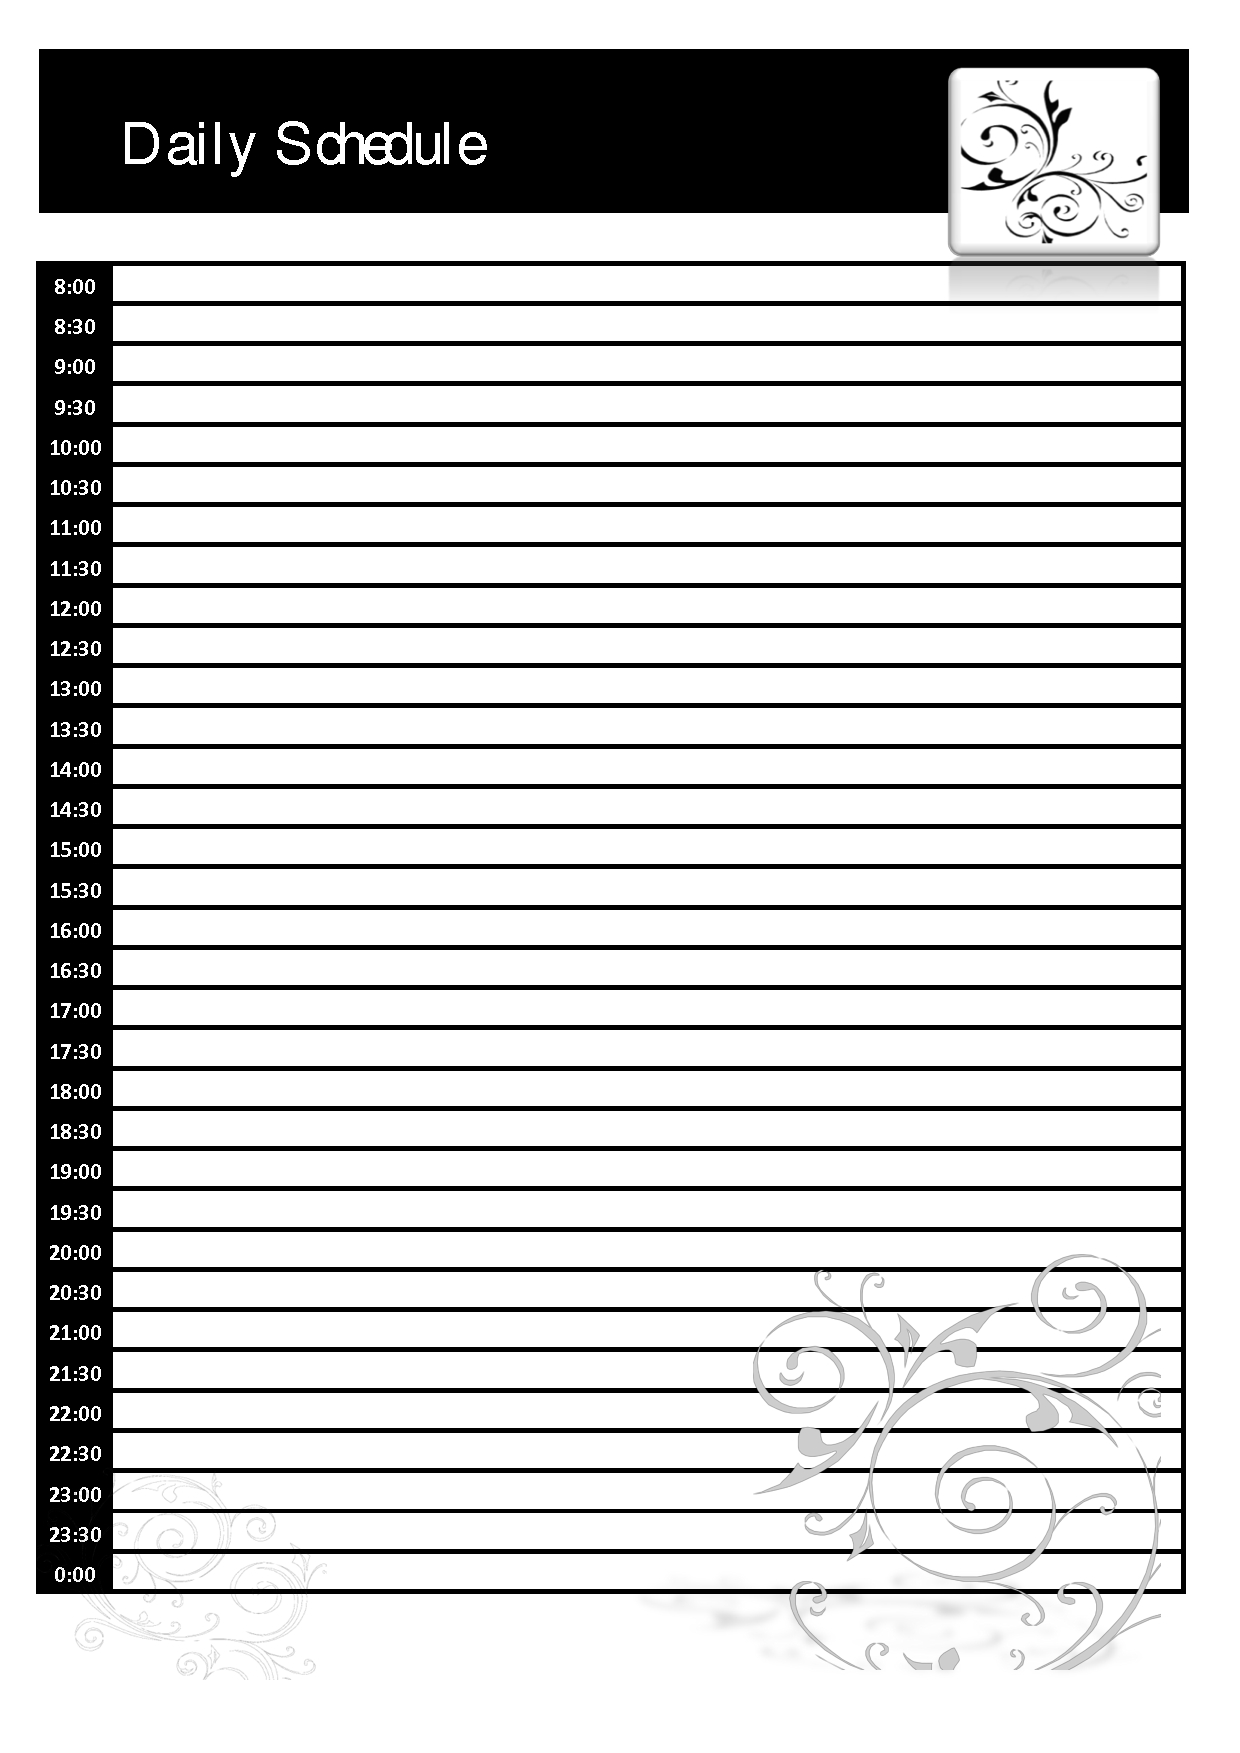 024 Daily Planner Template Printable Ideas Blank Schedule 128247 for Daily Planner Template Printable Free